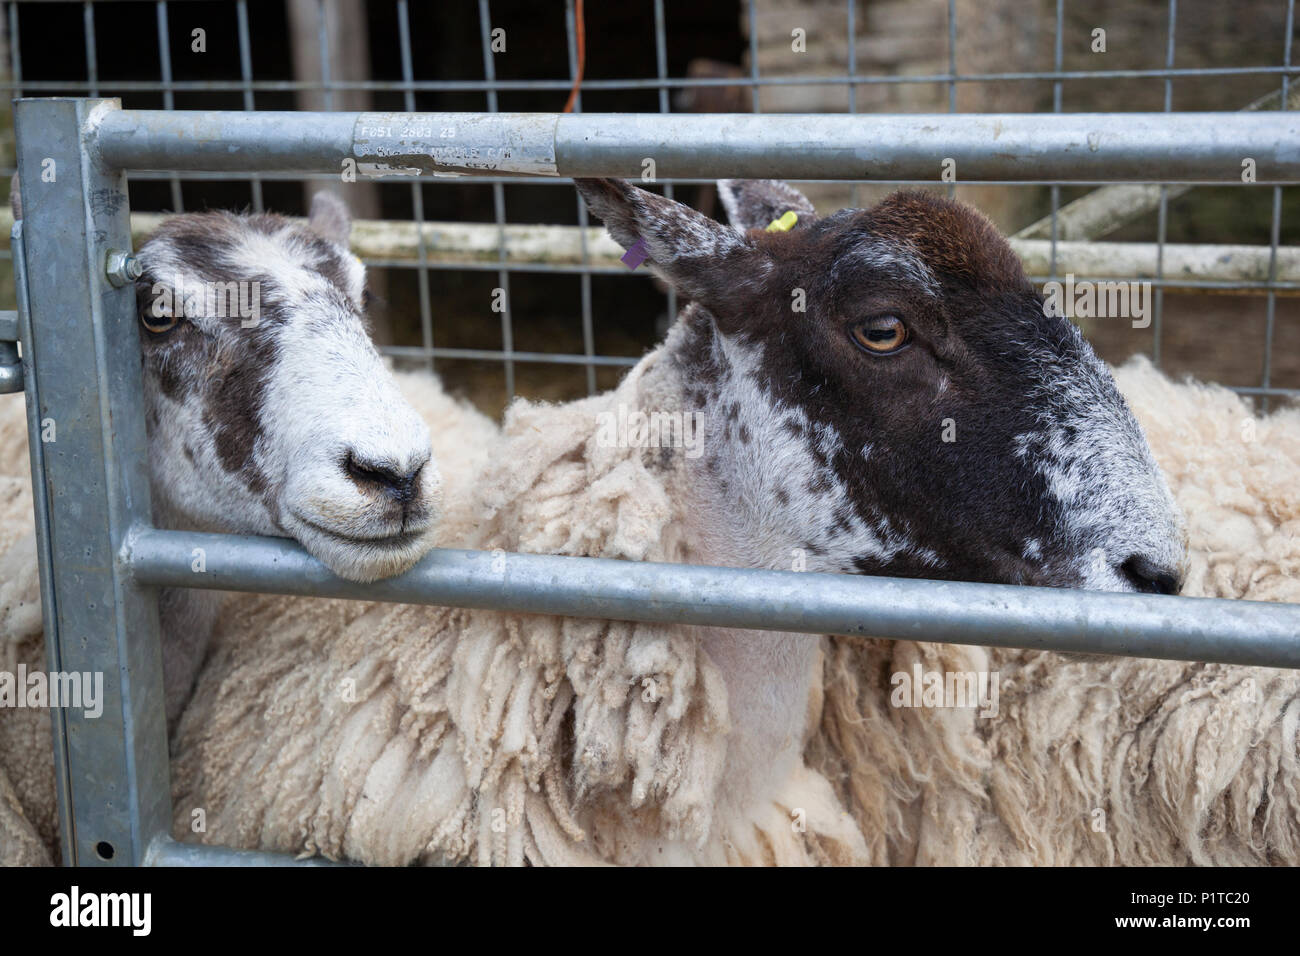 North Country Mule sheep in farmyard waiting to be sheared, Stow-on-the-Wold, Cotswolds, Gloucestershire, England, United Kingdom, Europe - Stock Image